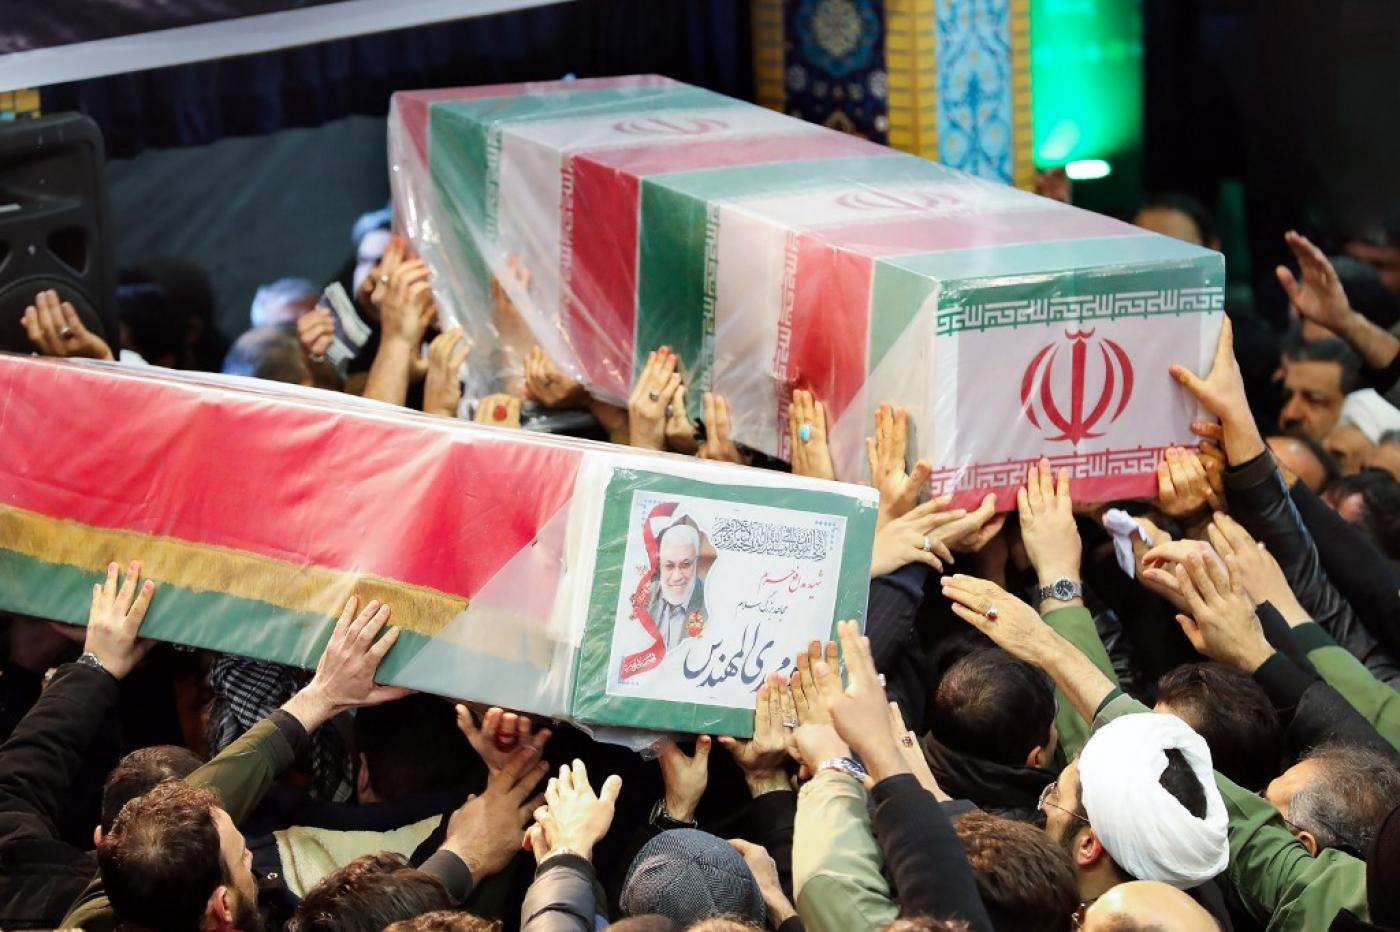 The caskets of Soleimani and Iraqi paramilitary chief Abu Mahdi al-Muhandis were carried through to the front at Tehran University (AFP)